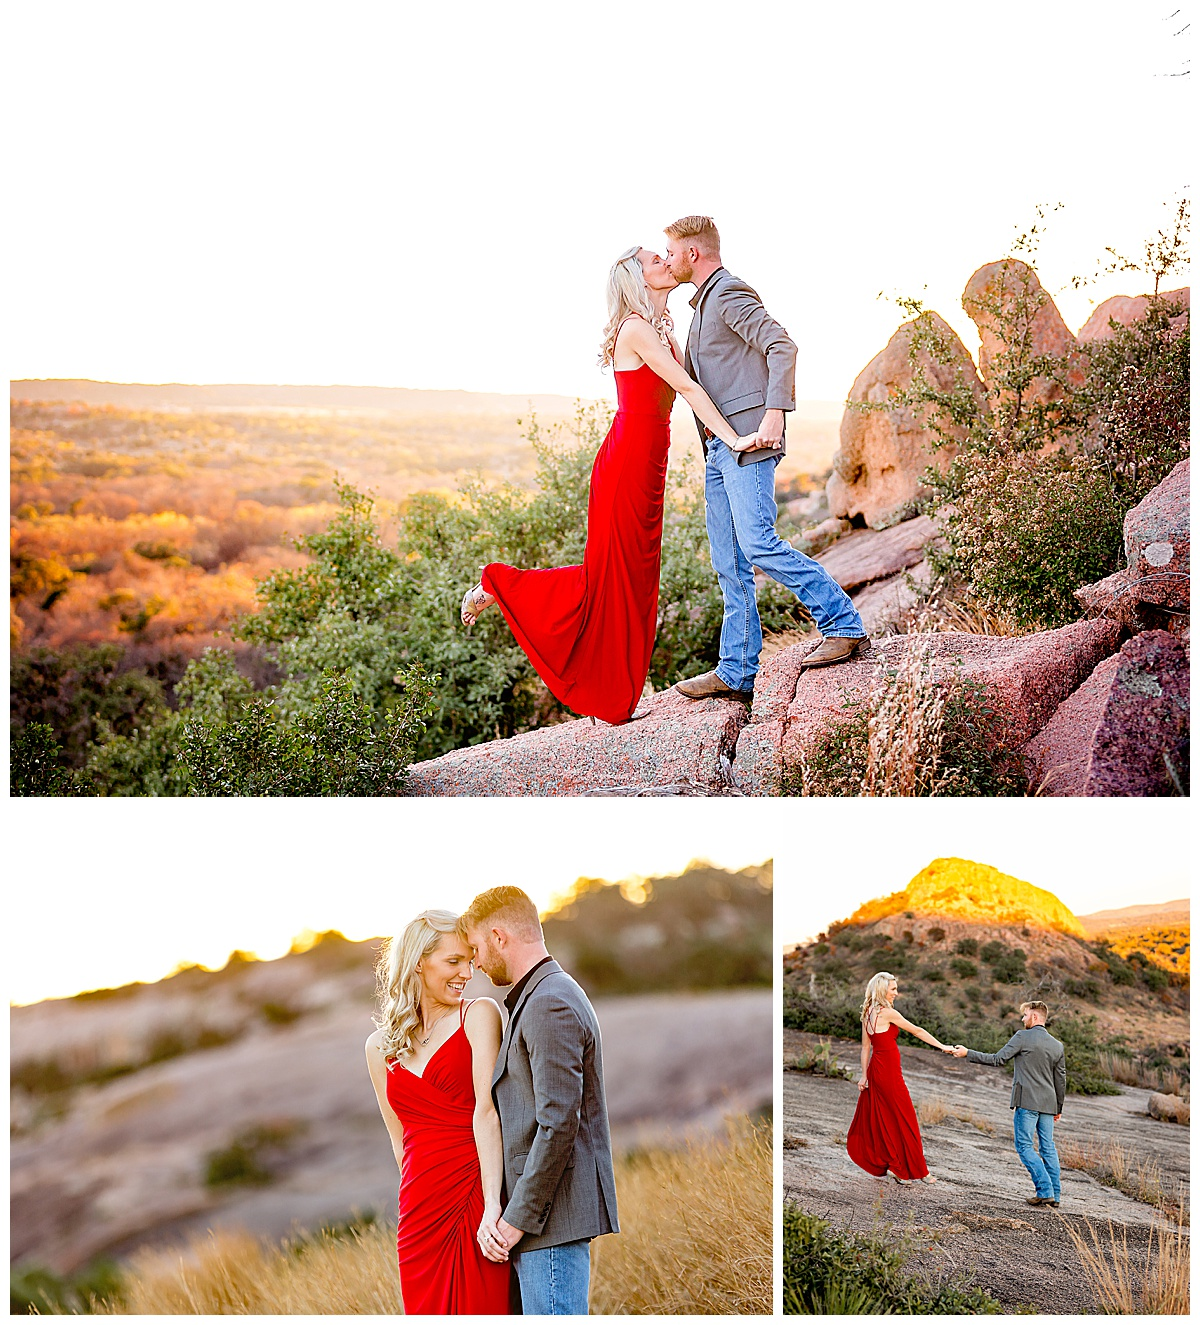 South-Texas-Wedding-Photographer-Engagement-Photos-Enchanted-Rock-Fredericksburg-Sunset-Couples-Carly-Barton-Photography_0003.jpg